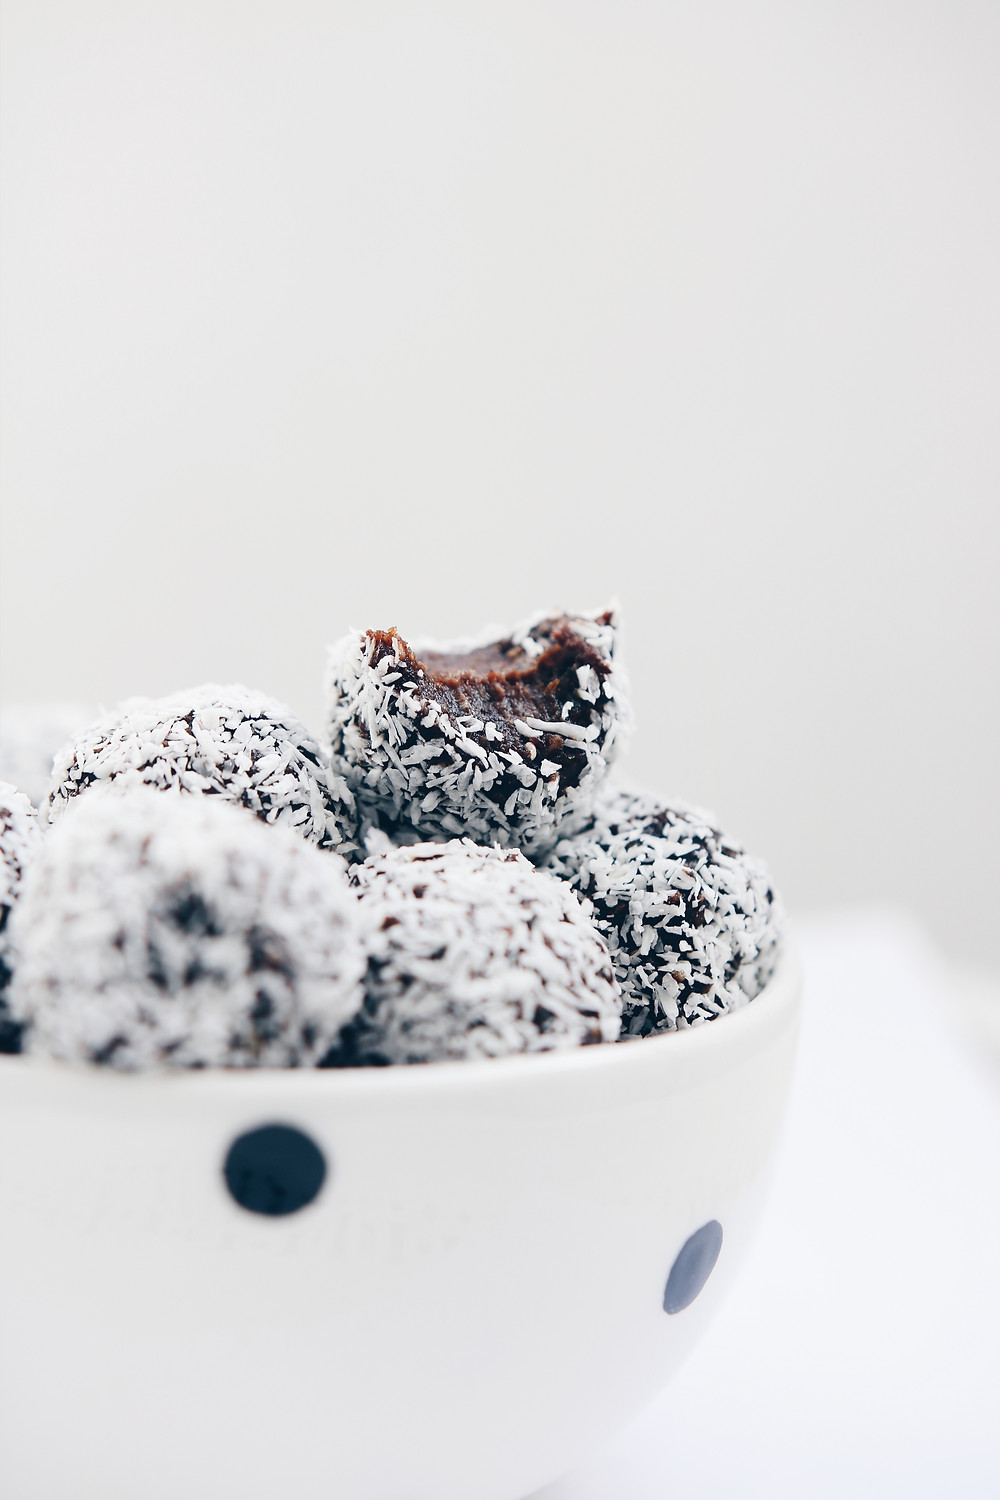 A polka dot ceramic bowl full of energy bite balls. The energy ball on top of the pile has a bite taken out of it.